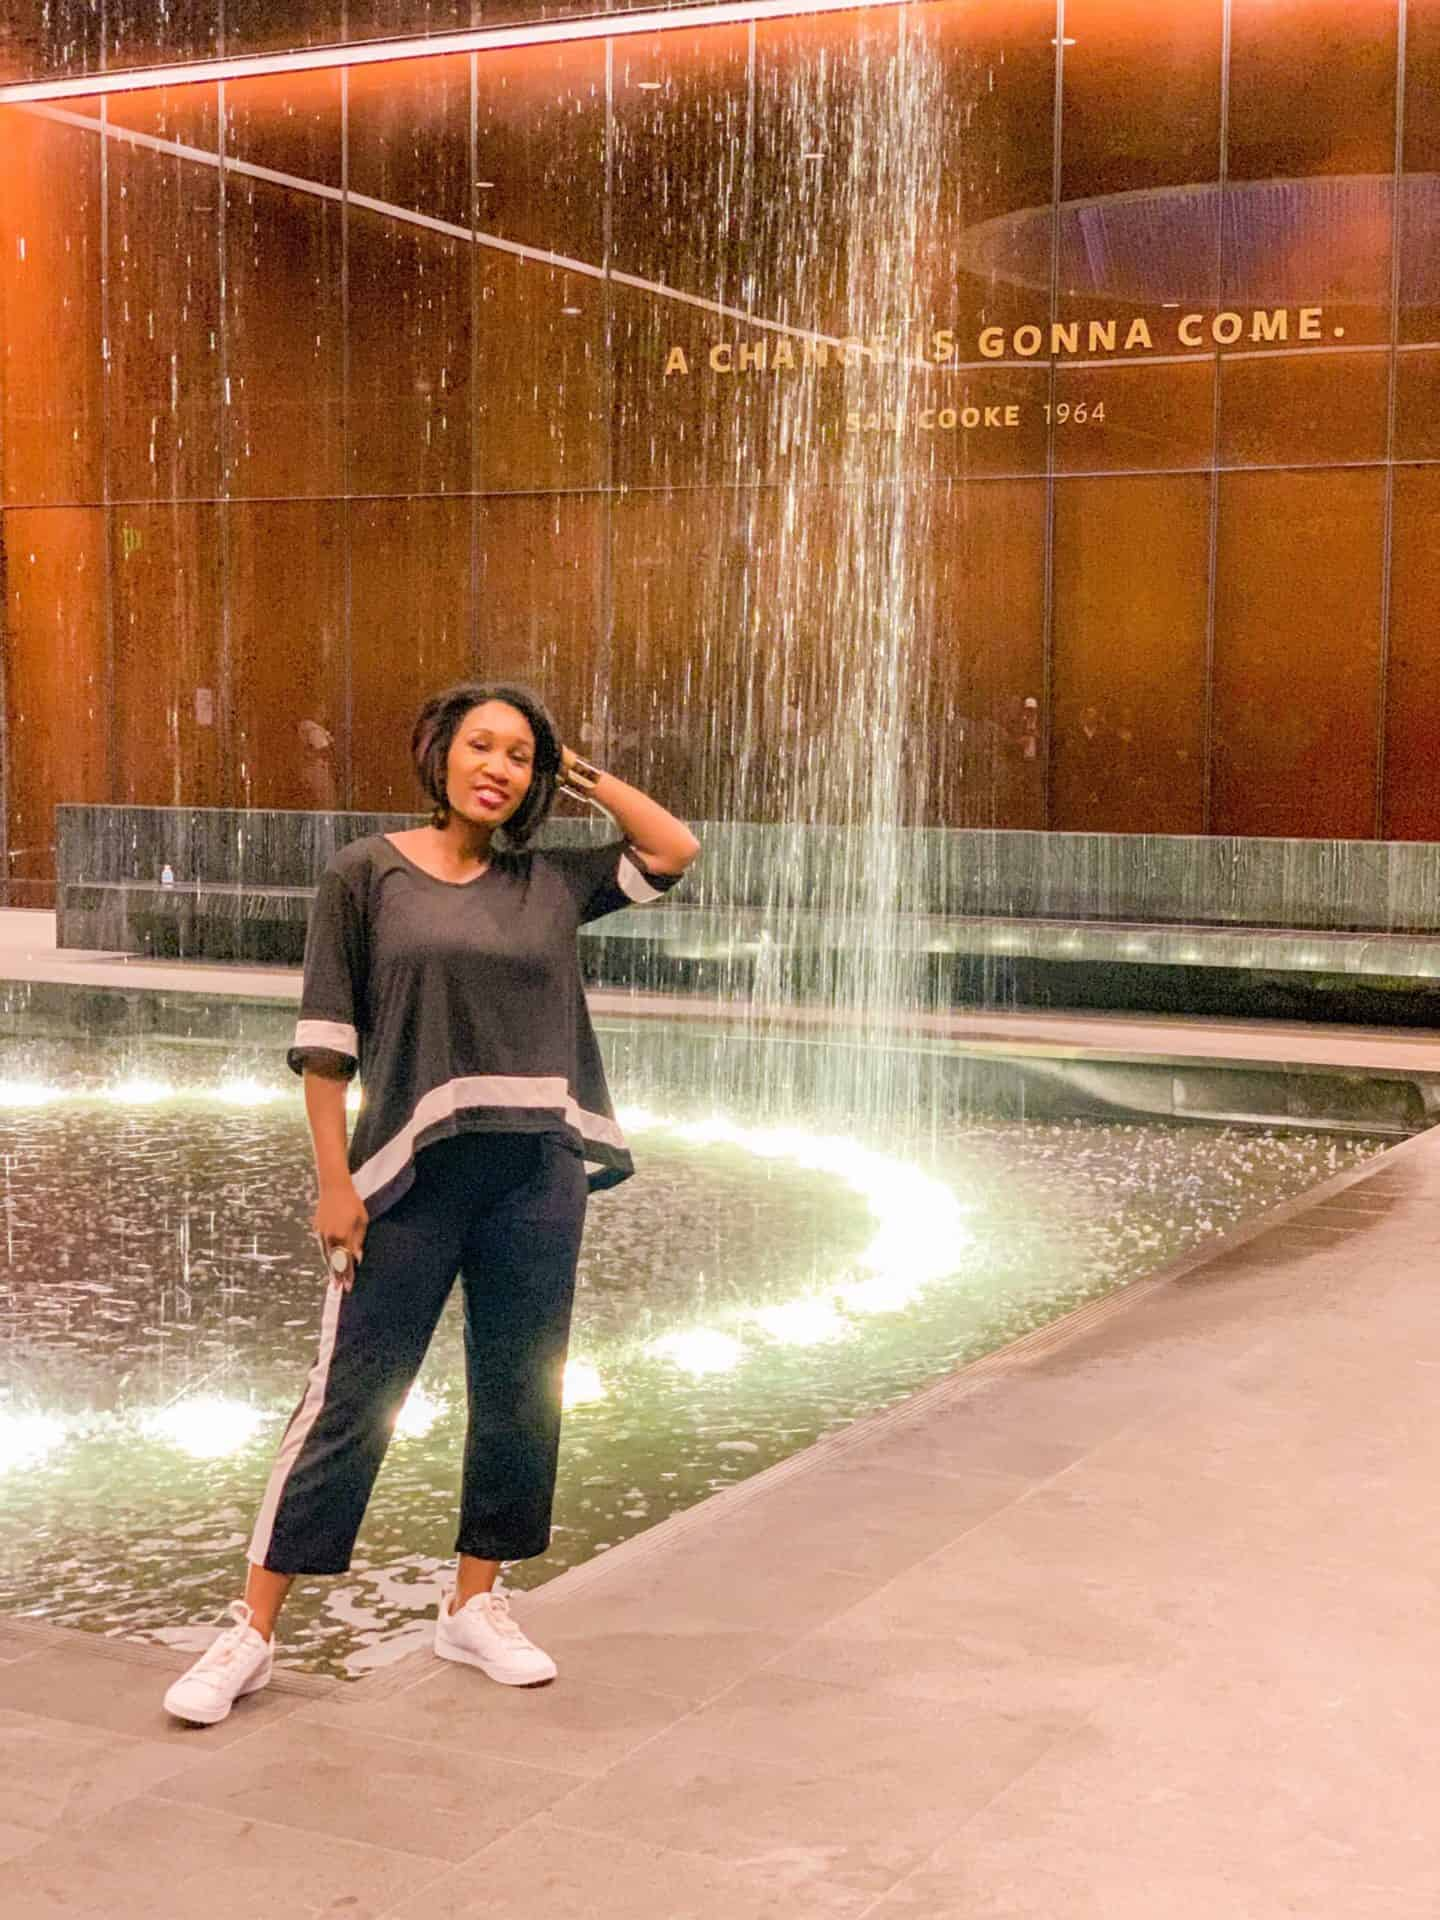 Shaunda Necole—Washington DC, National Museum of African American History and Culture—A change is gonna come. -Sam Cooke 1964